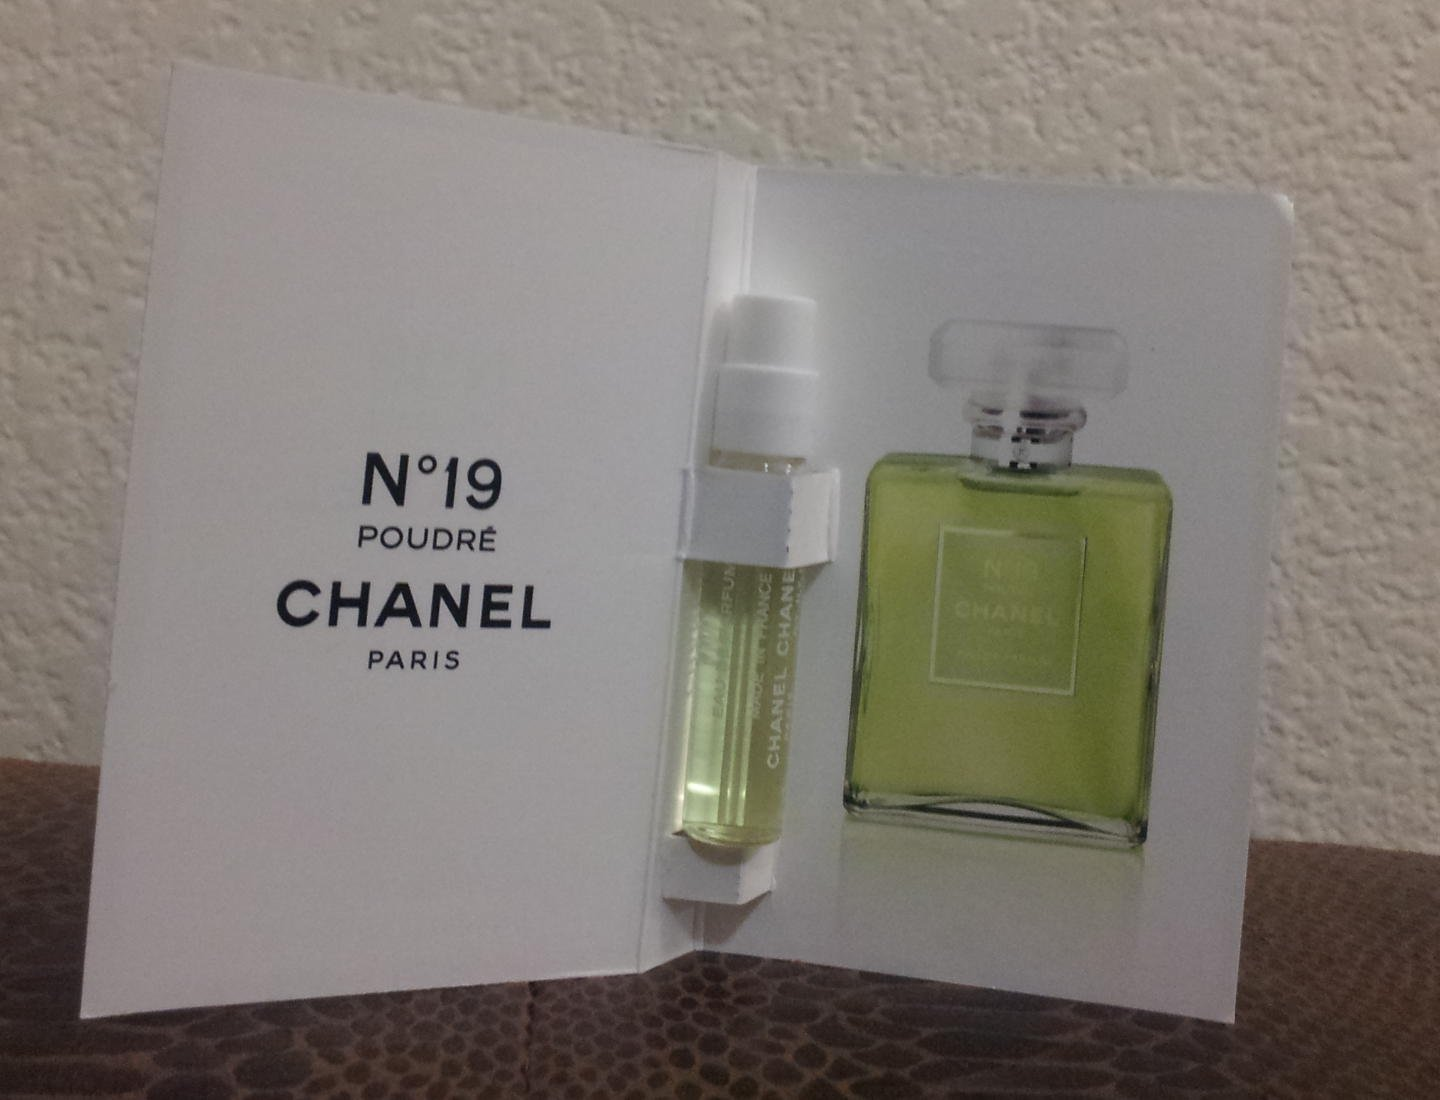 Chanel no 19 poudre samples and decants, perfume decant – ps&d.